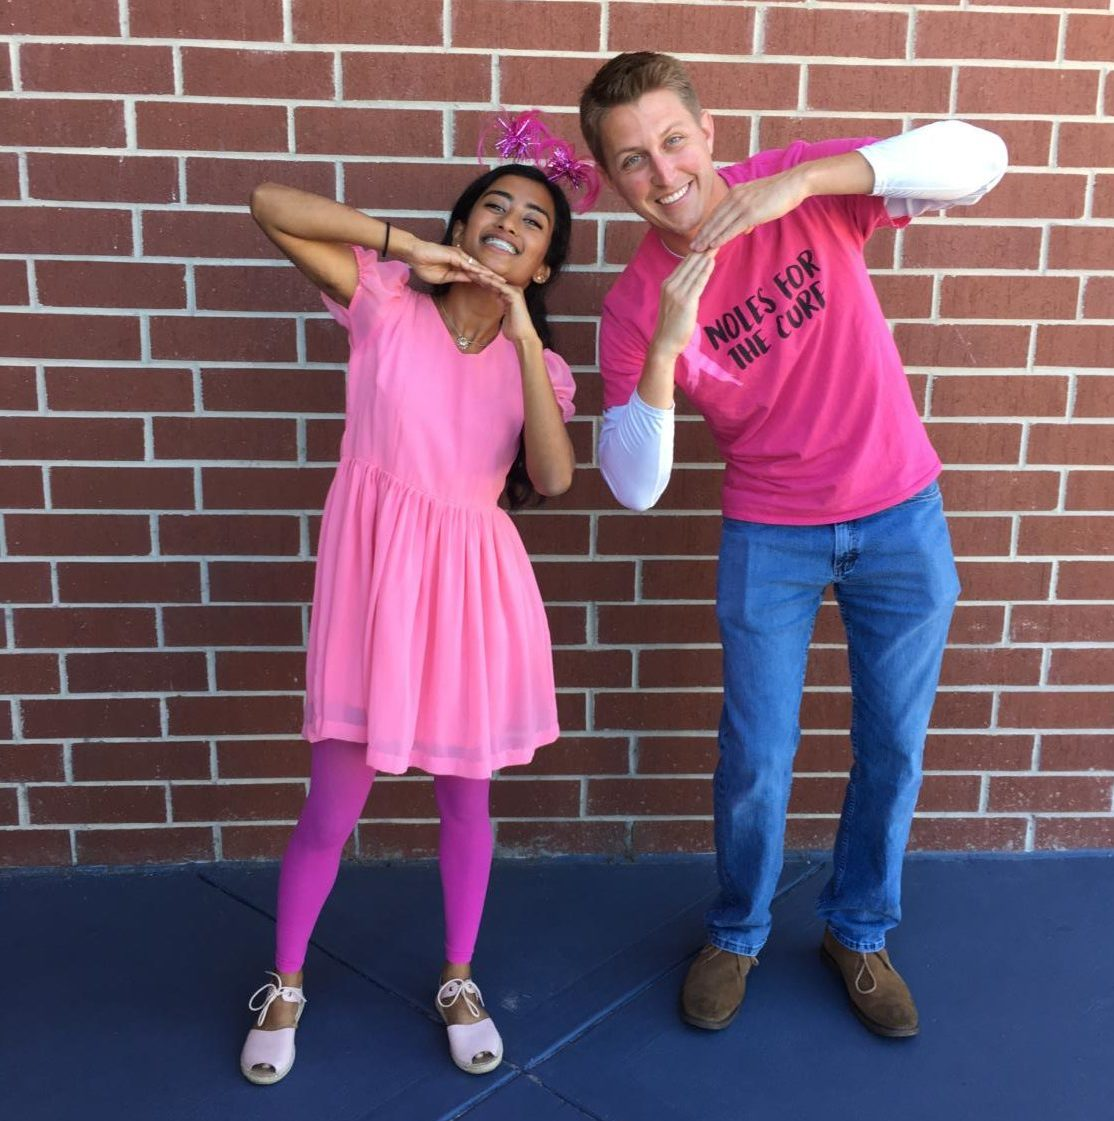 Iffat Nawsheen, along with Leadership teacher Alexander Mack, is dedicated to making this school year memorable.